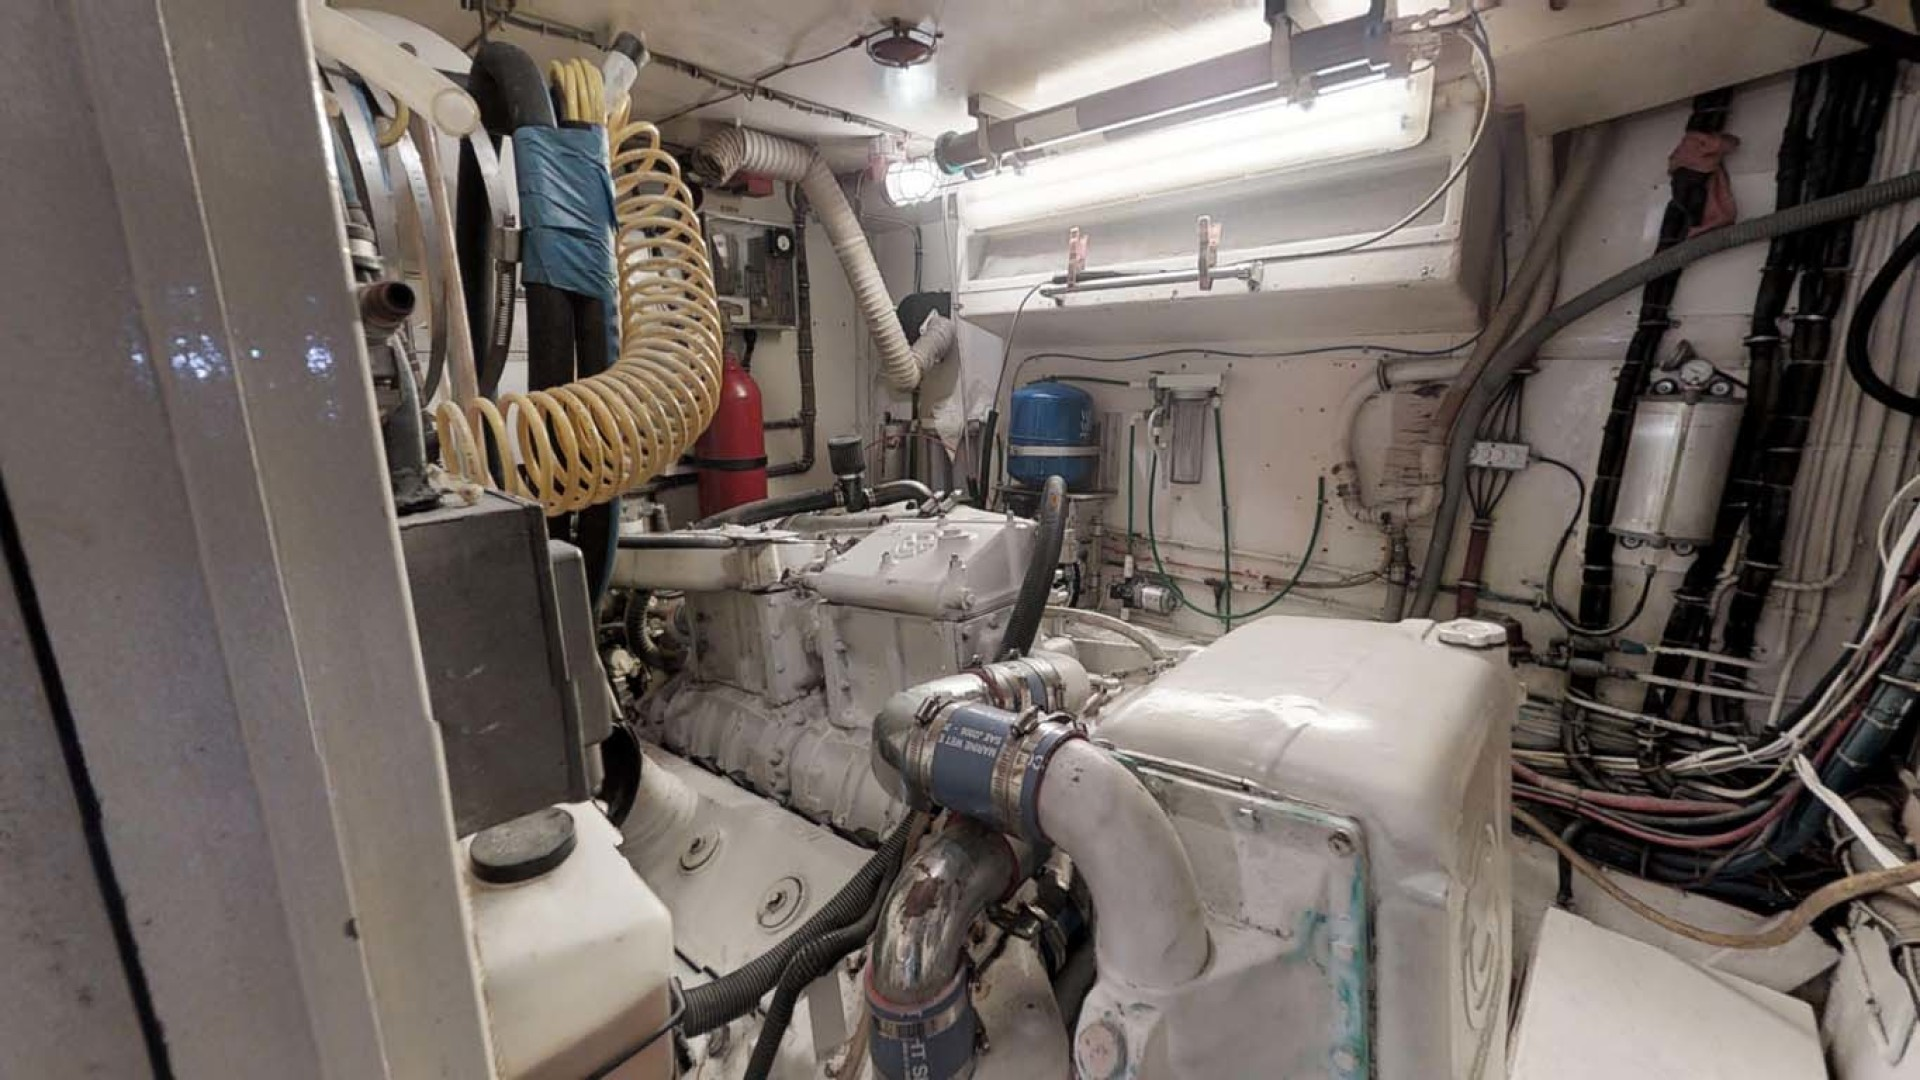 Hatteras-74 Motor Yacht 1981-Pleasurizer Fort Pierce-Florida-United States-Engine Room-1122277 | Thumbnail